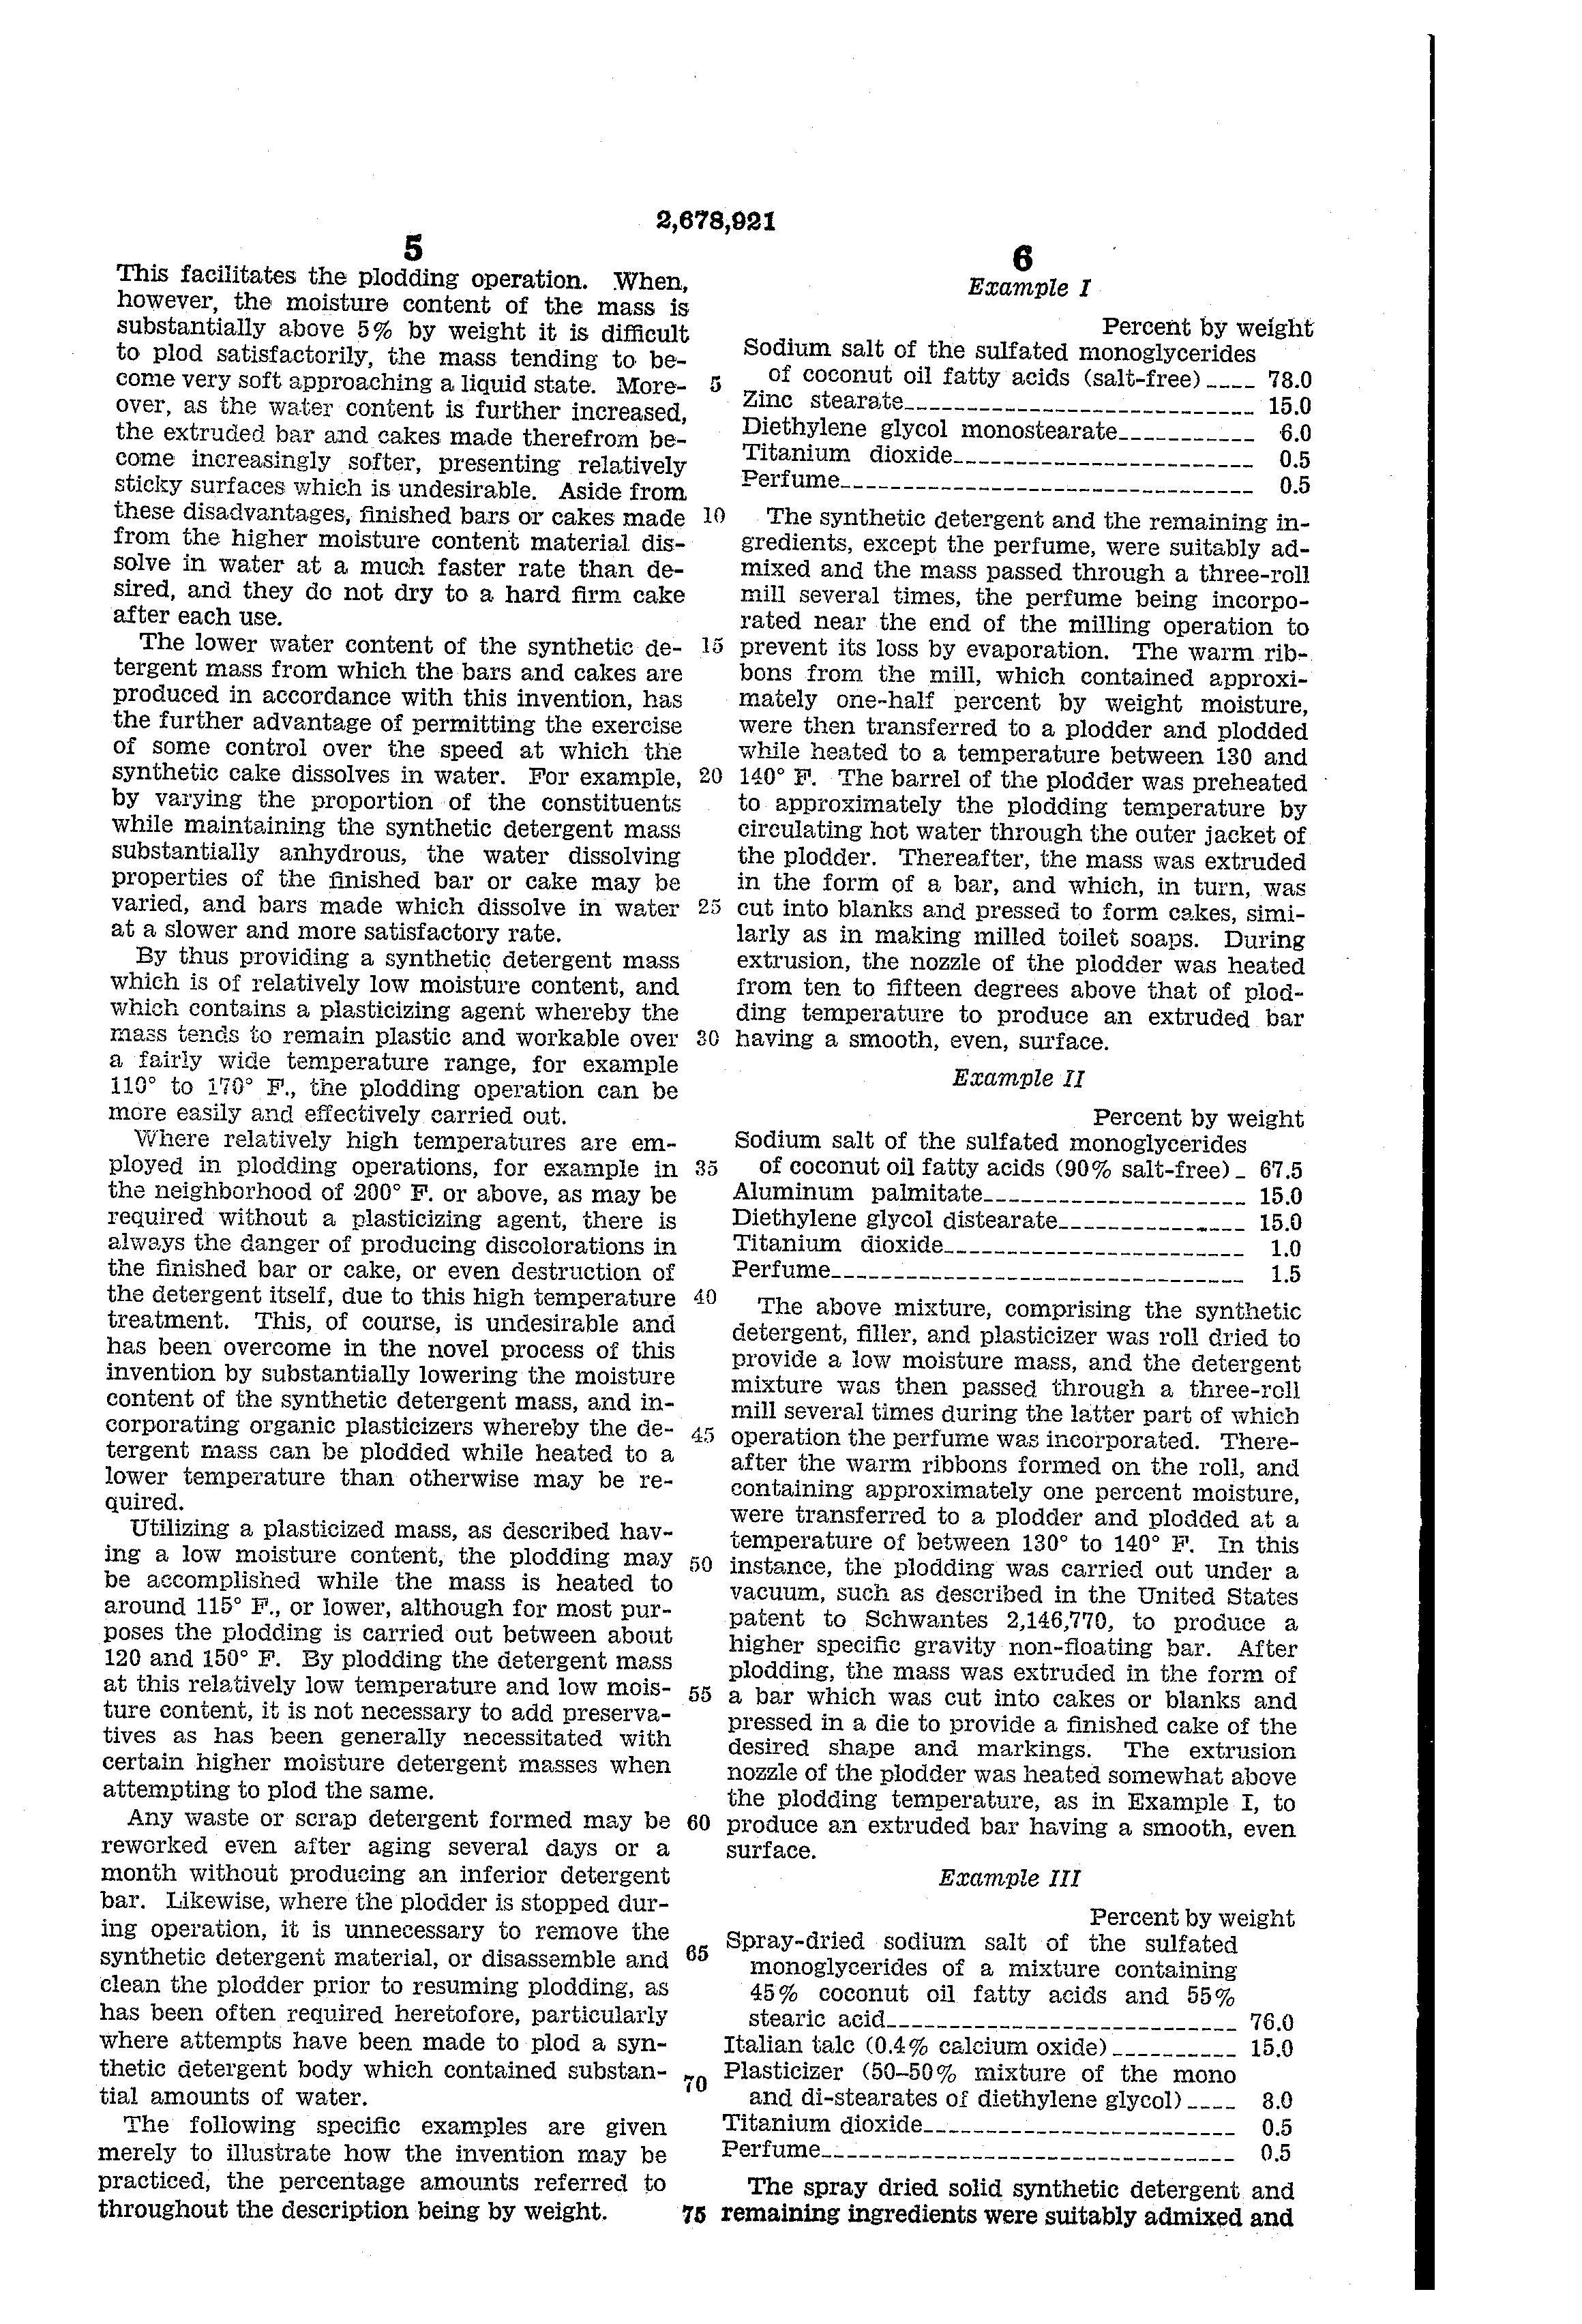 us patent office forms